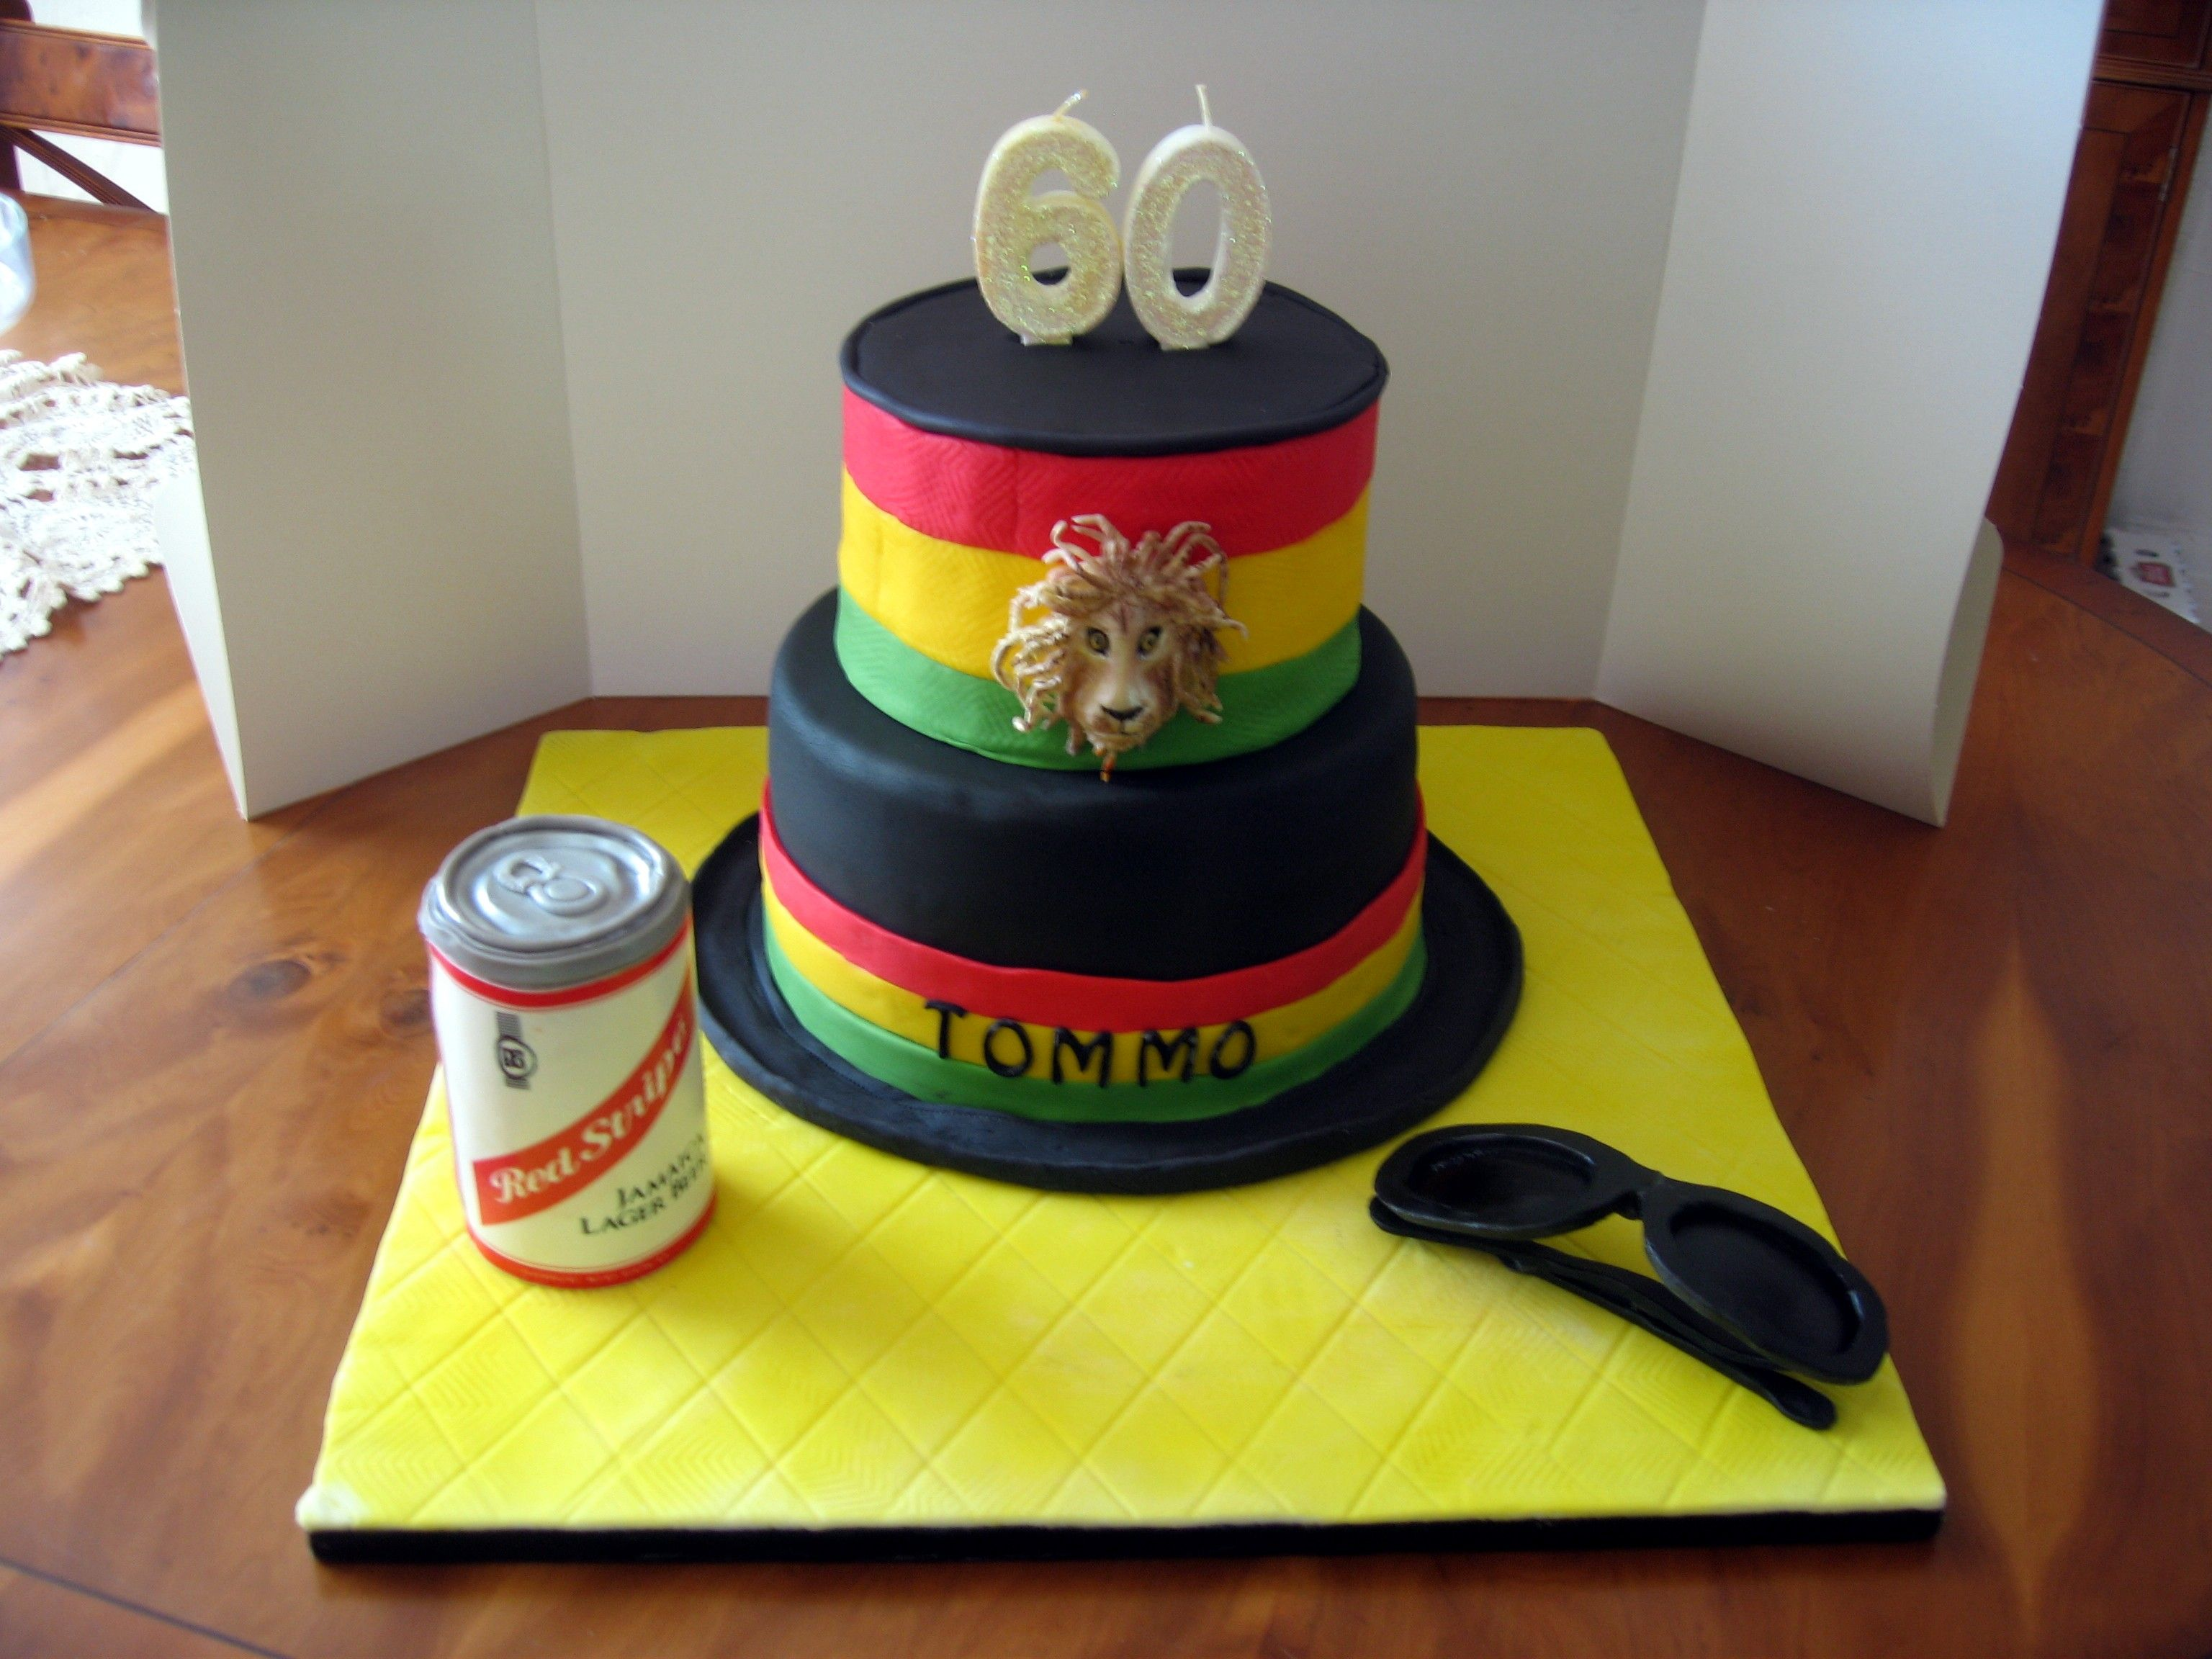 Pin by Aubrie Cuda on Recipes Pinterest Rasta cake Cake pop and